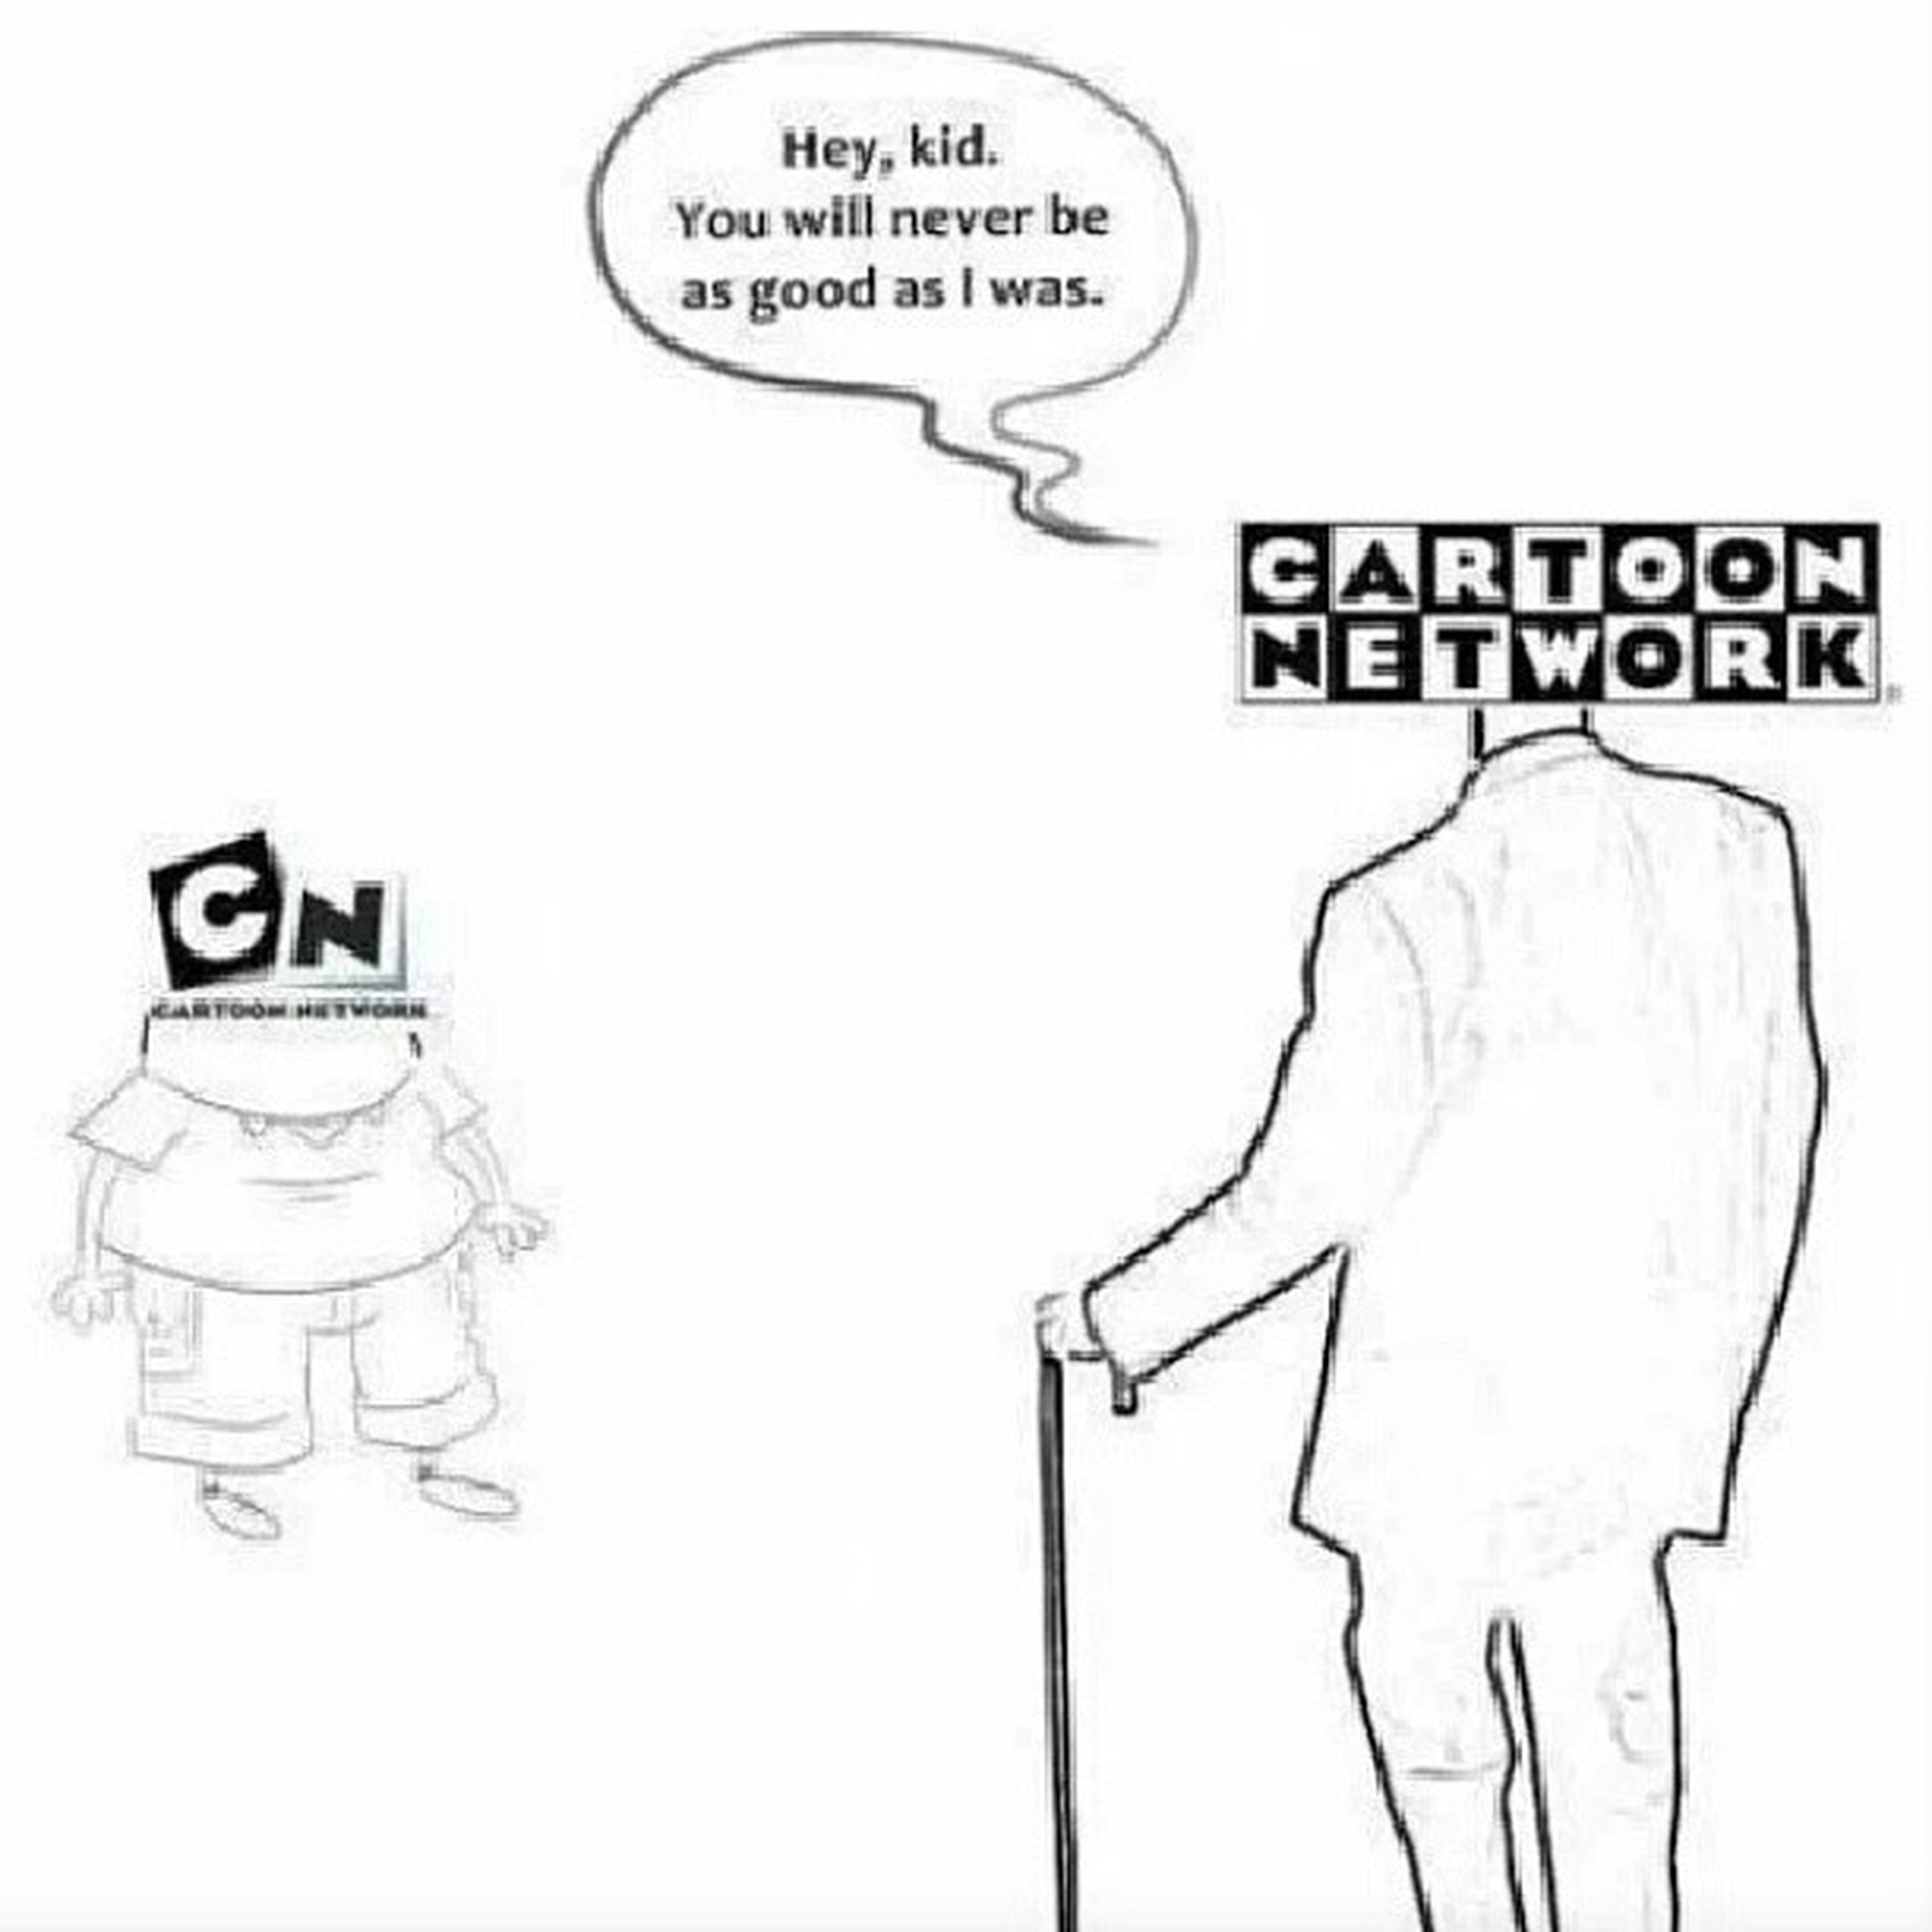 I guess its safe to say that the old cartoon network was a lot better than the shit thats on now. Oldcartoonnetwork Better Than Newcartoonnetwork itstrue tagfortags like4likes